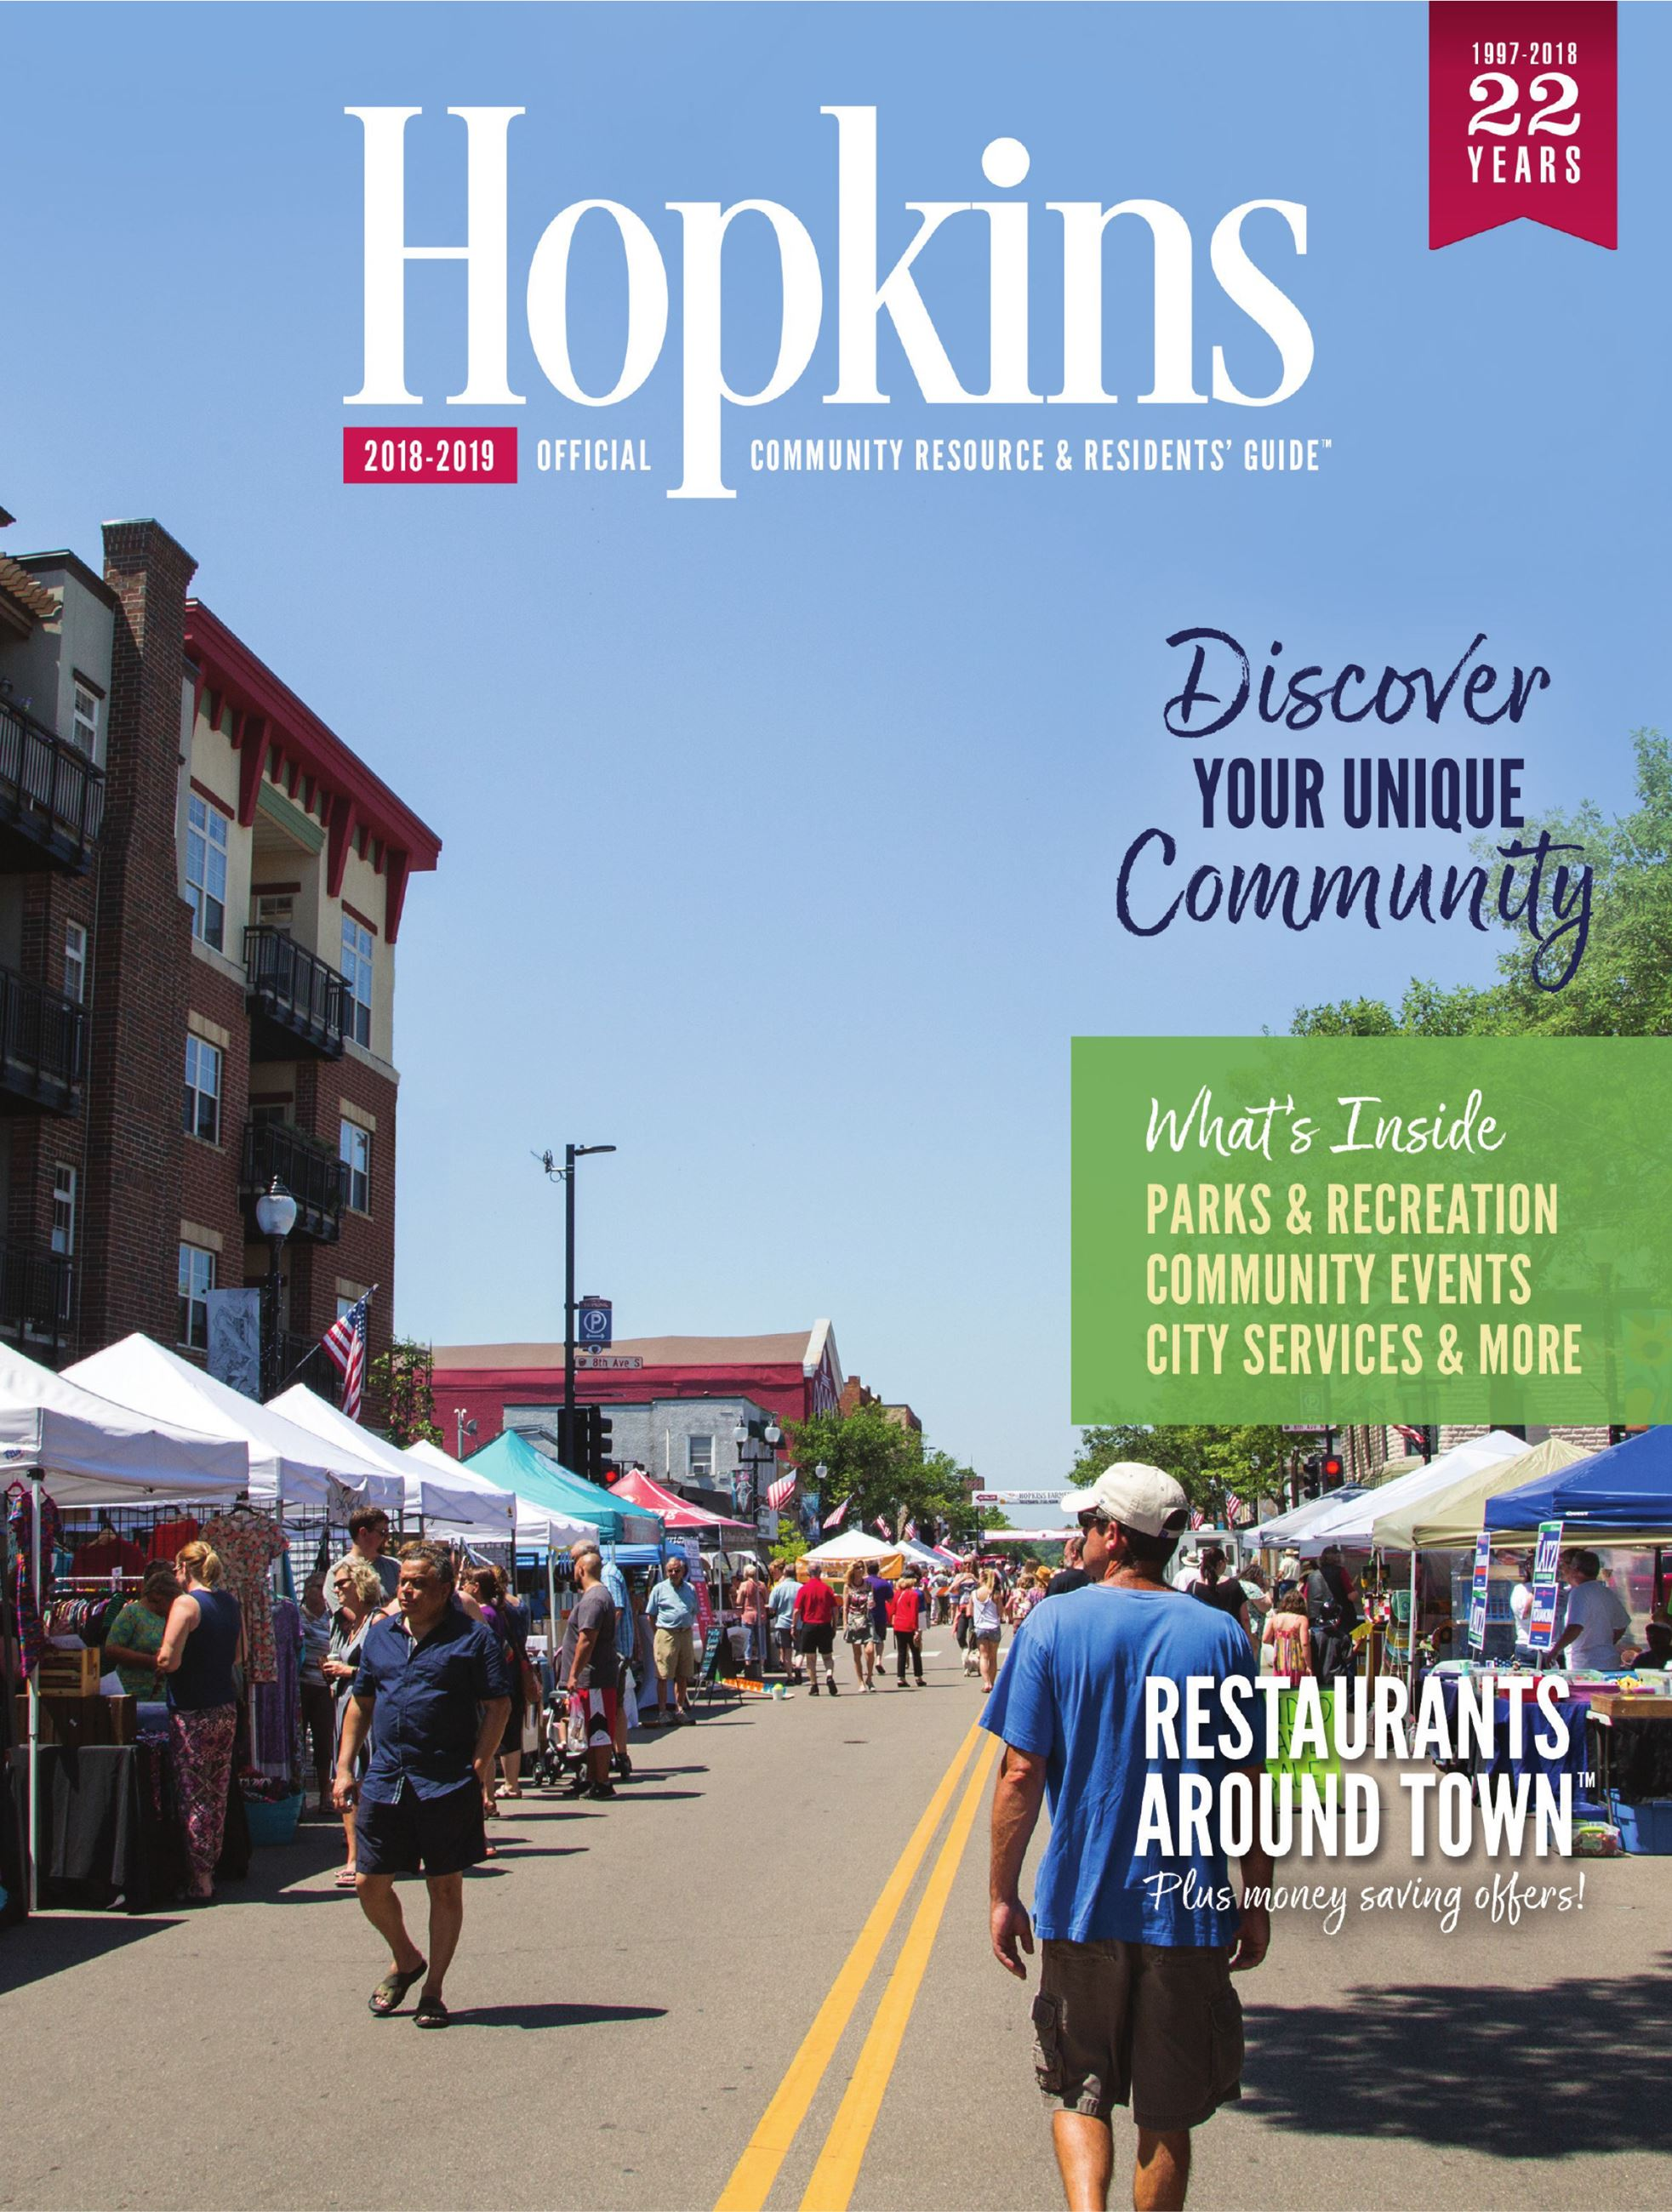 2018 Hopkins Community Guide Cover